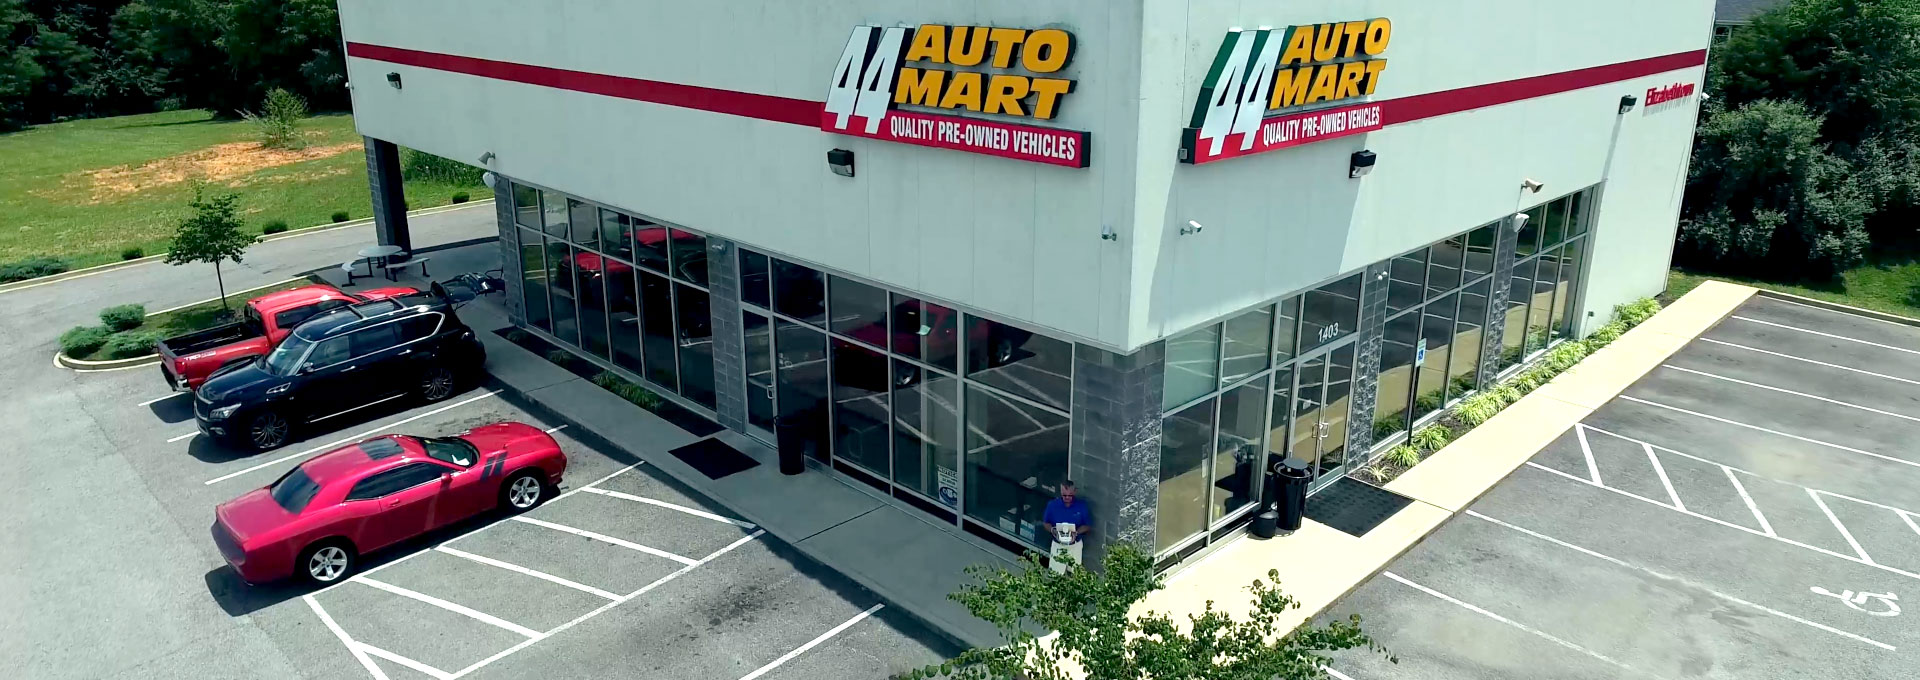 Used Trucks For Sale Louisville Ky >> 44 Auto Mart - Elizabethtown Elizabethtown KY | New & Used ...